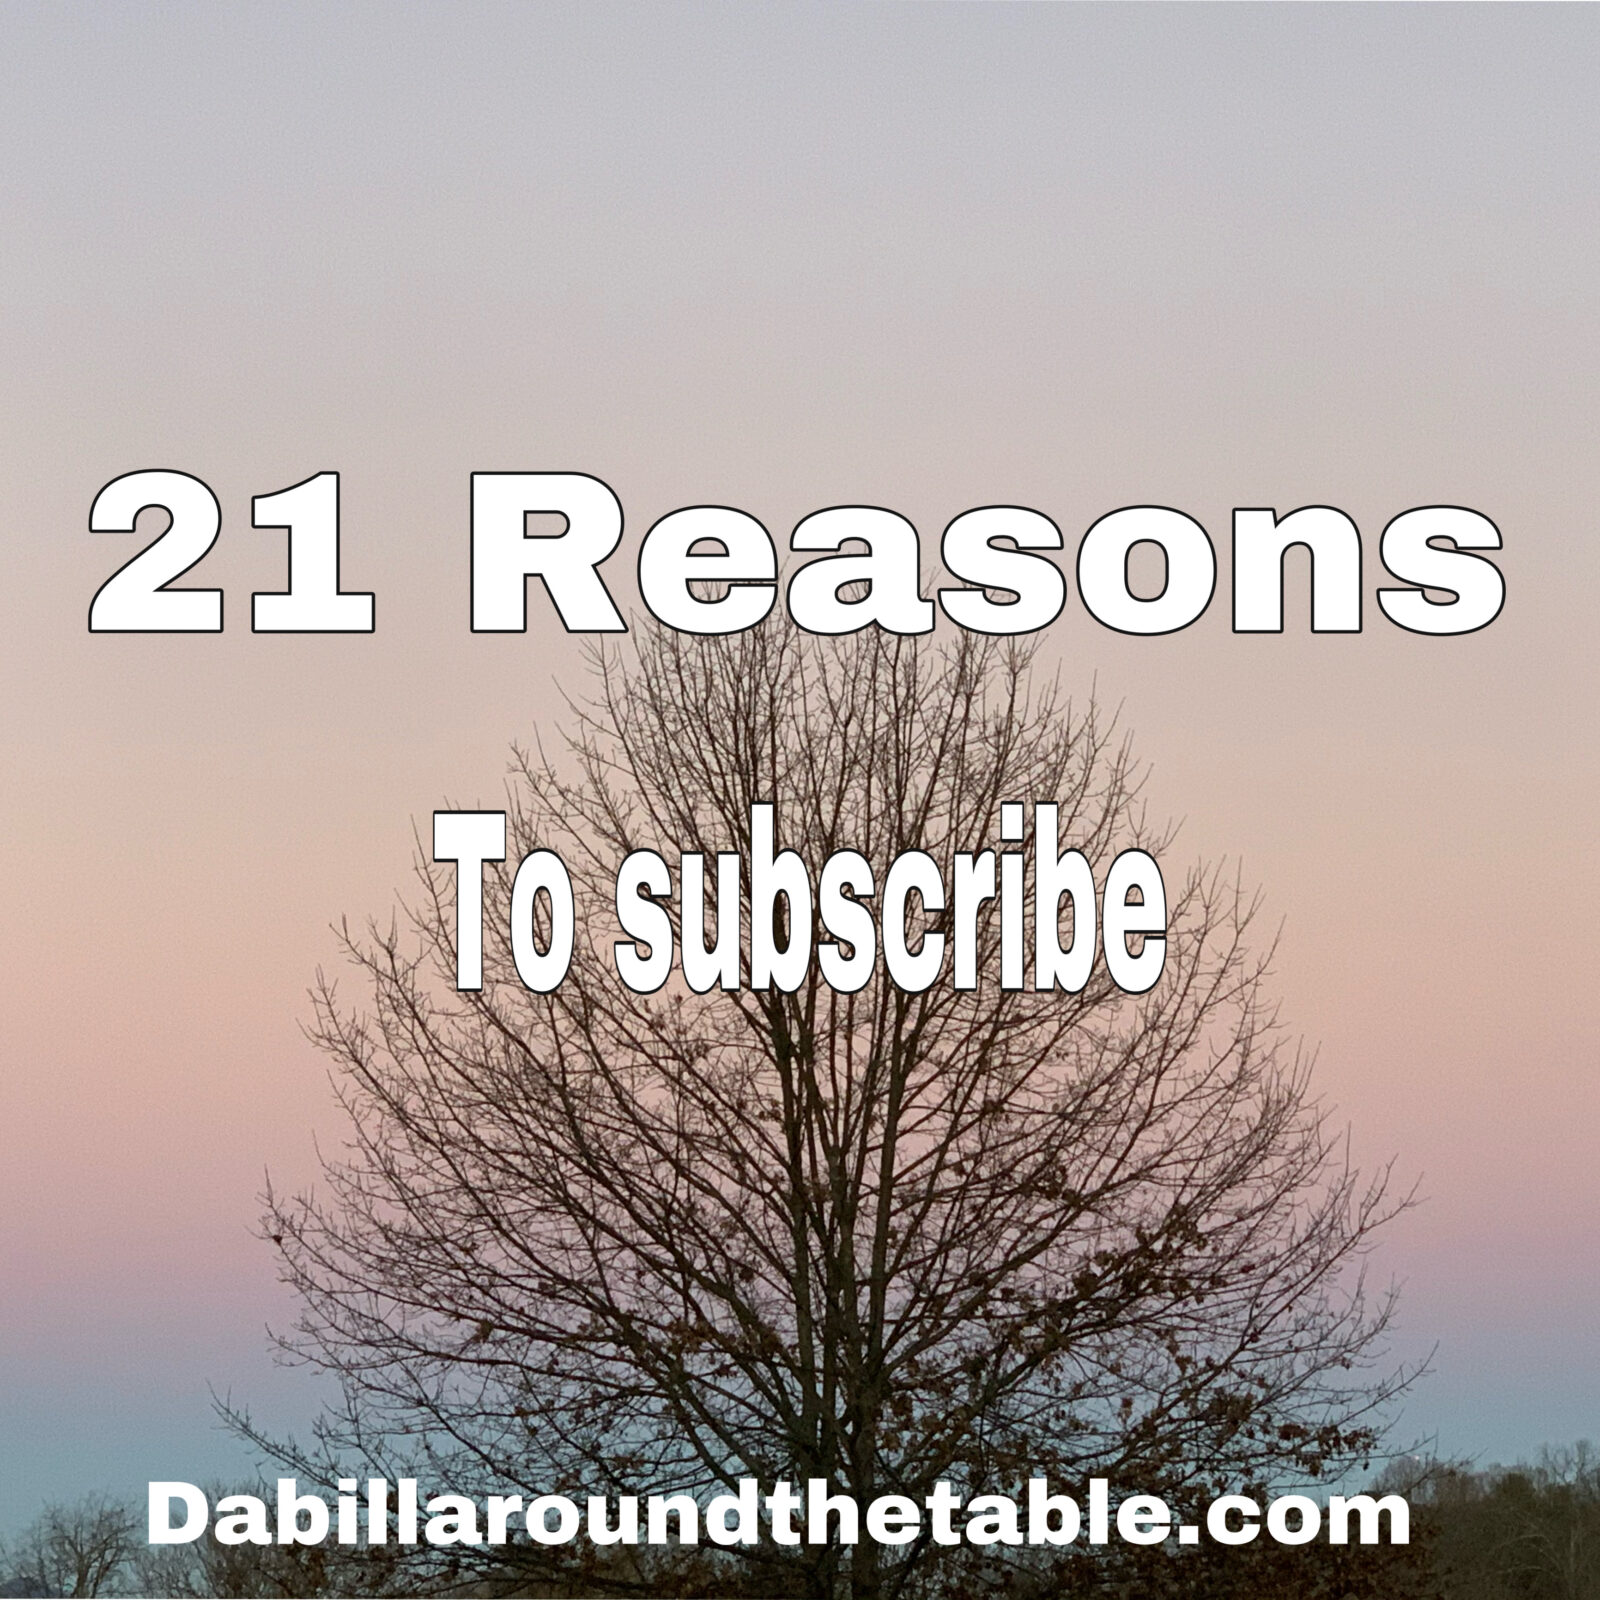 21 Reasons to Subscribe to dabillaroundthetable monthly email in 2021